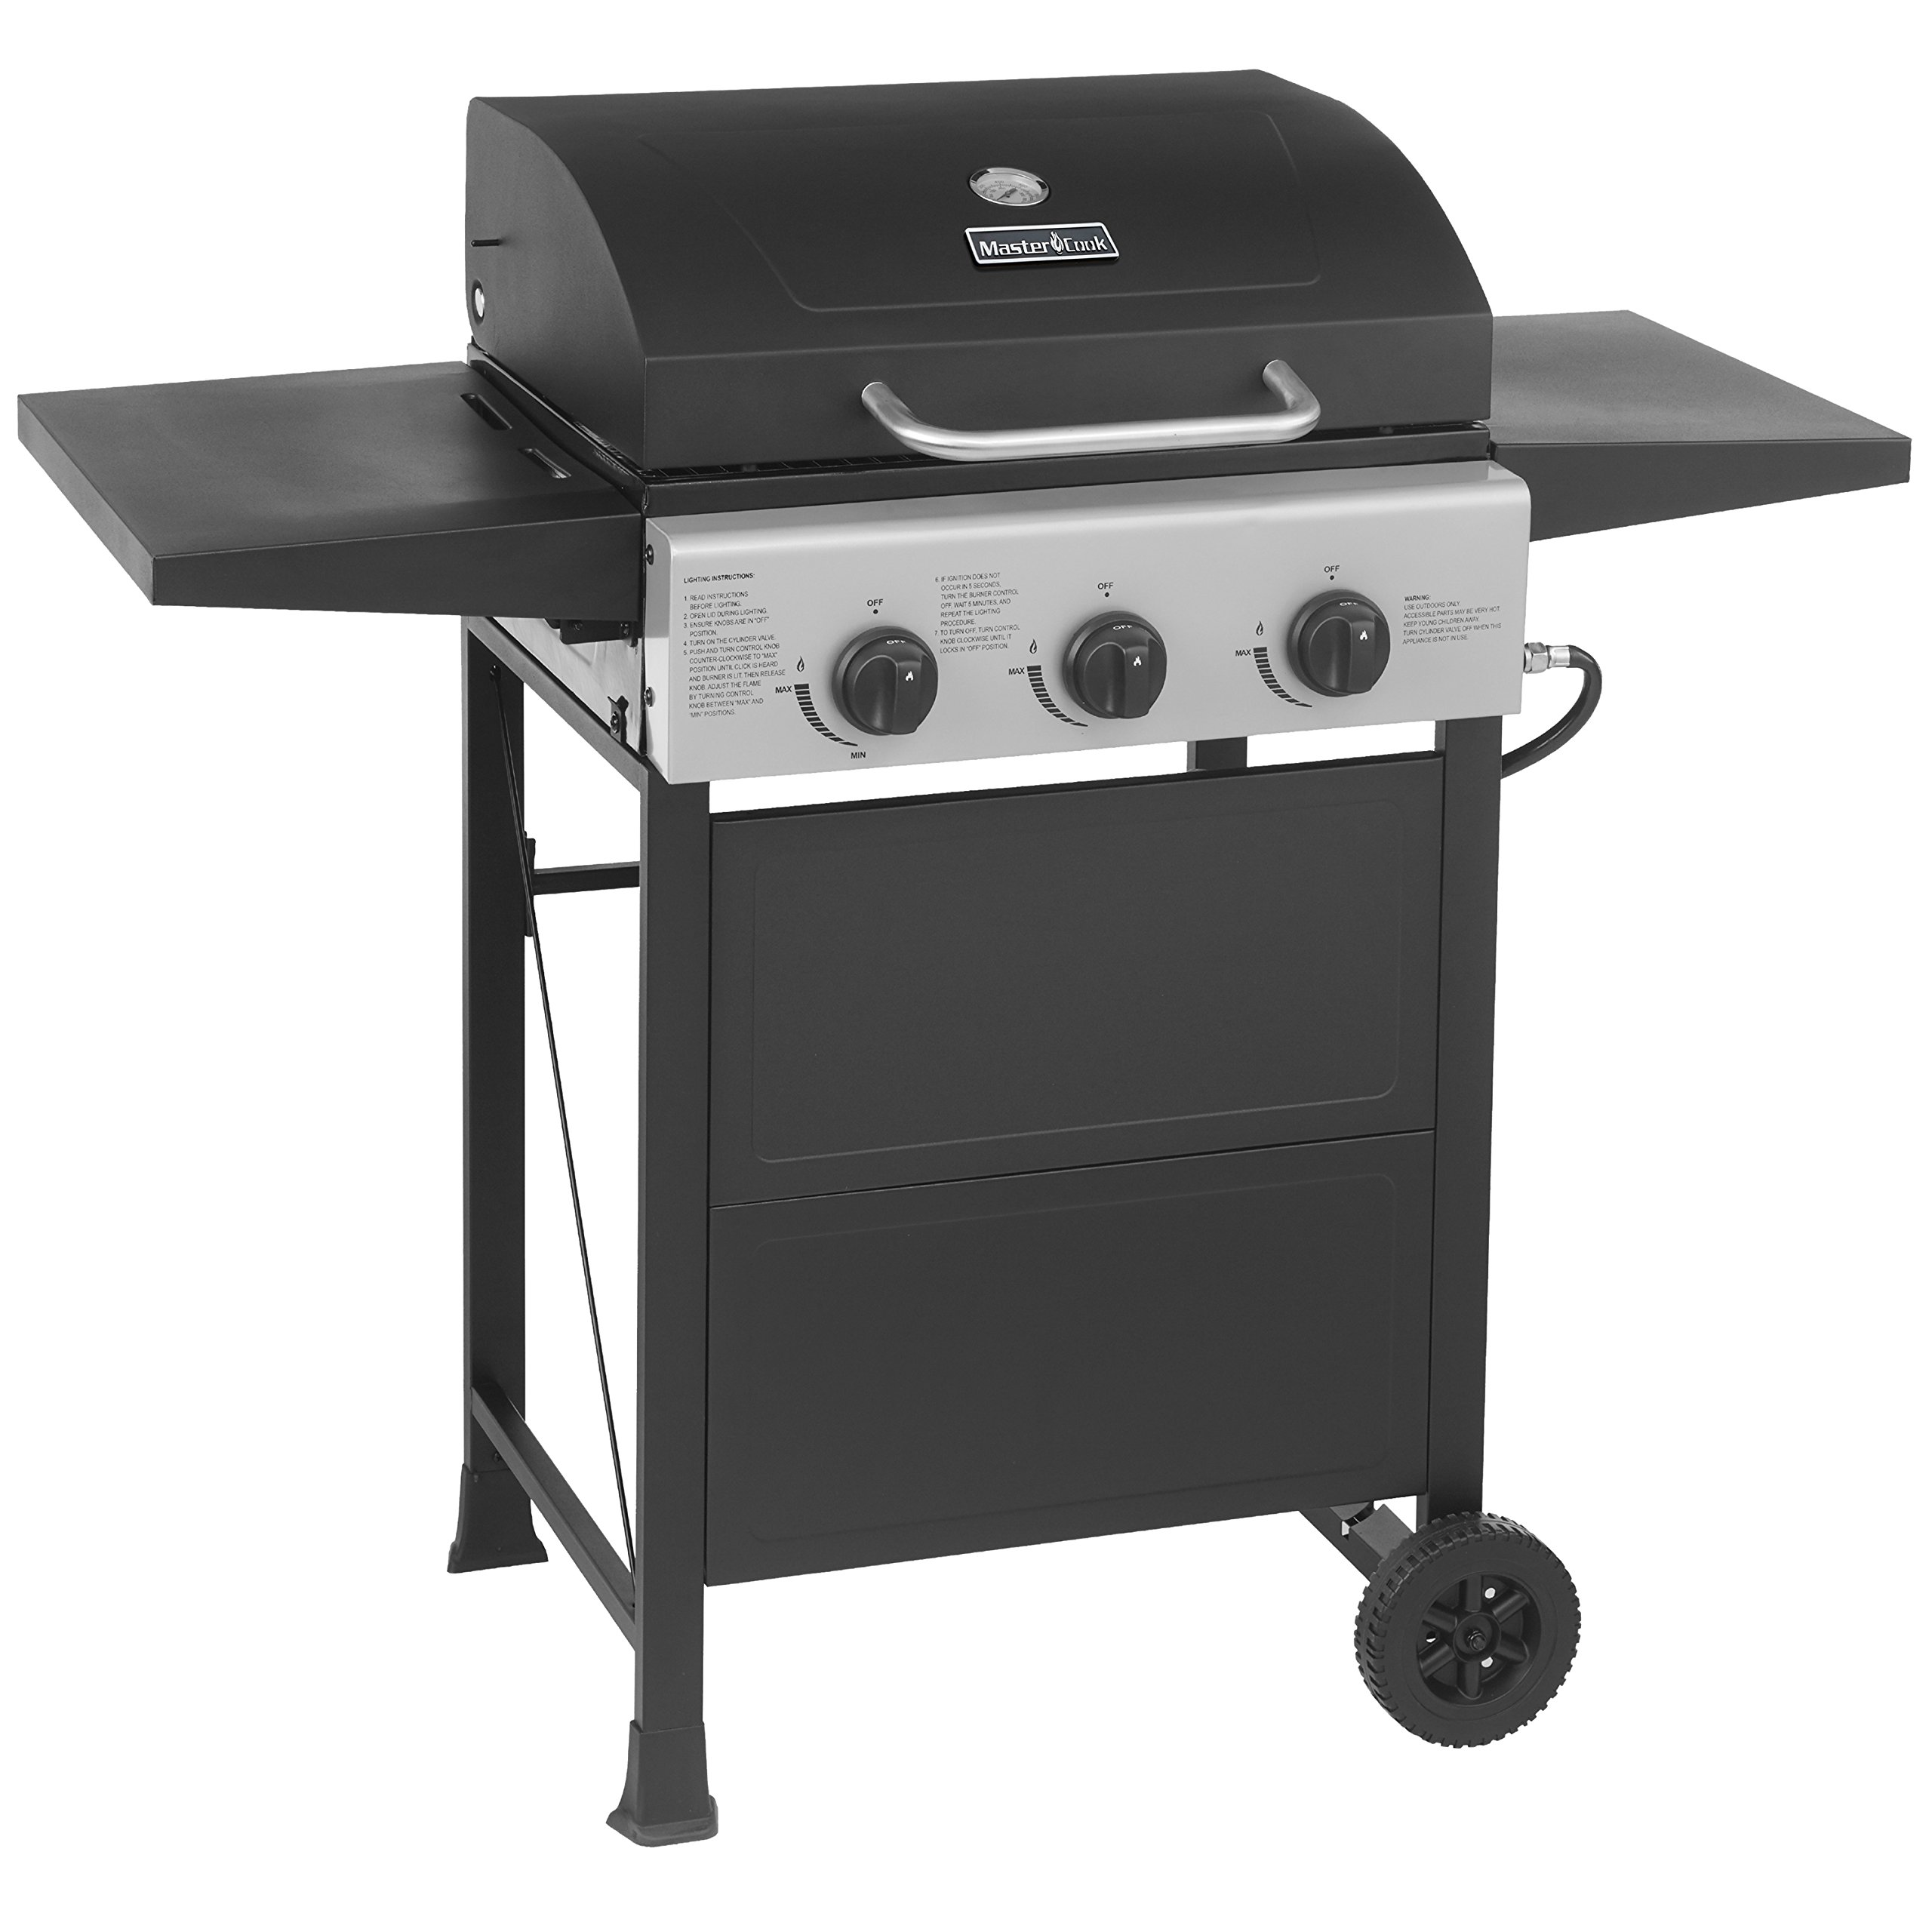 MASTER COOK Classic Liquid Propane Gas Grill, 3 Bunner with Folding Table, Black by MASTER COOK